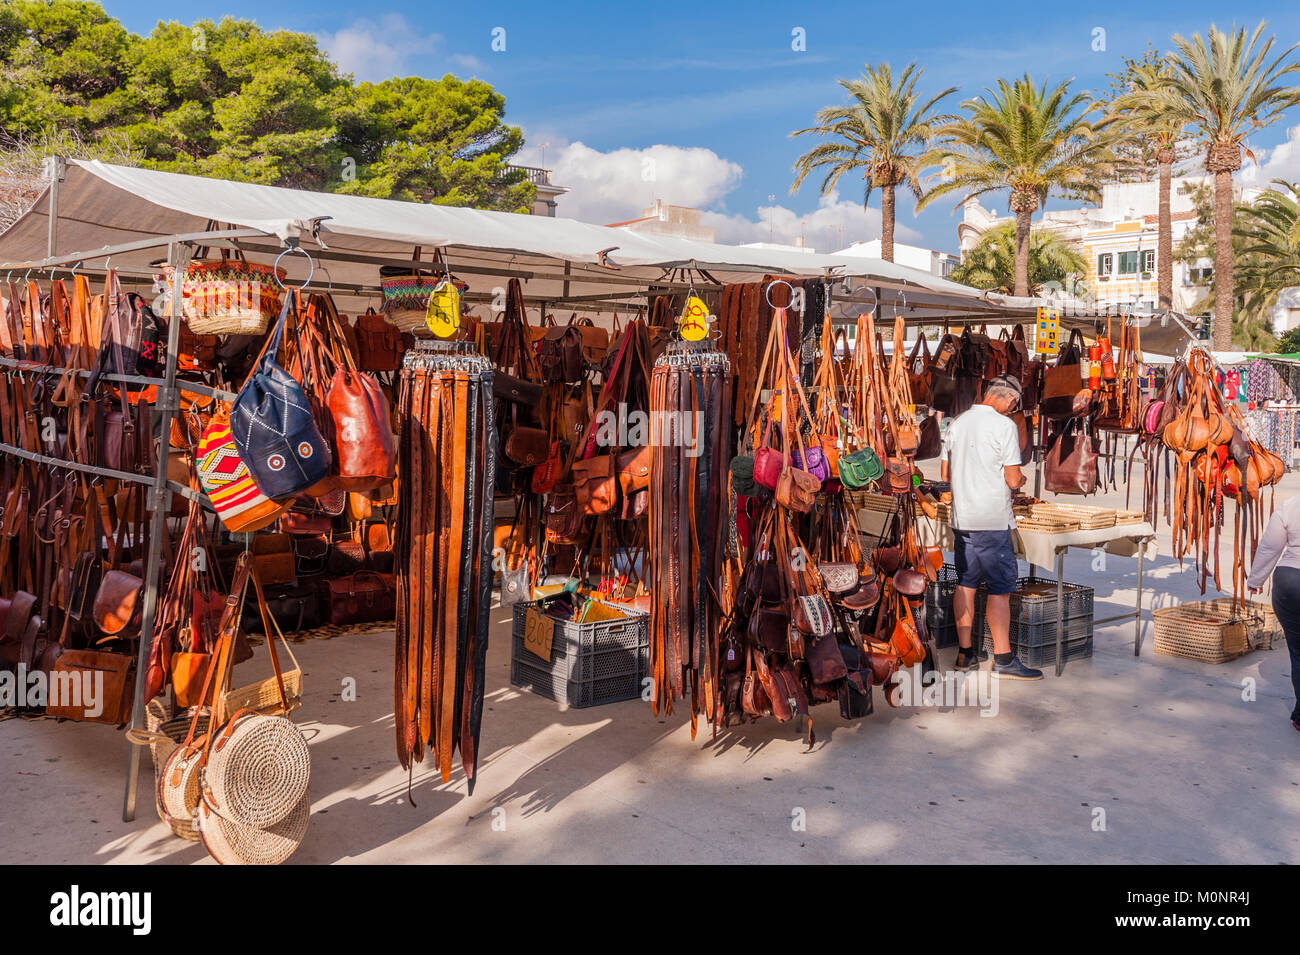 Leather belts and bags for sale at the street market in Mahon , Menorca , Balearic Islands , Spain - Stock Image